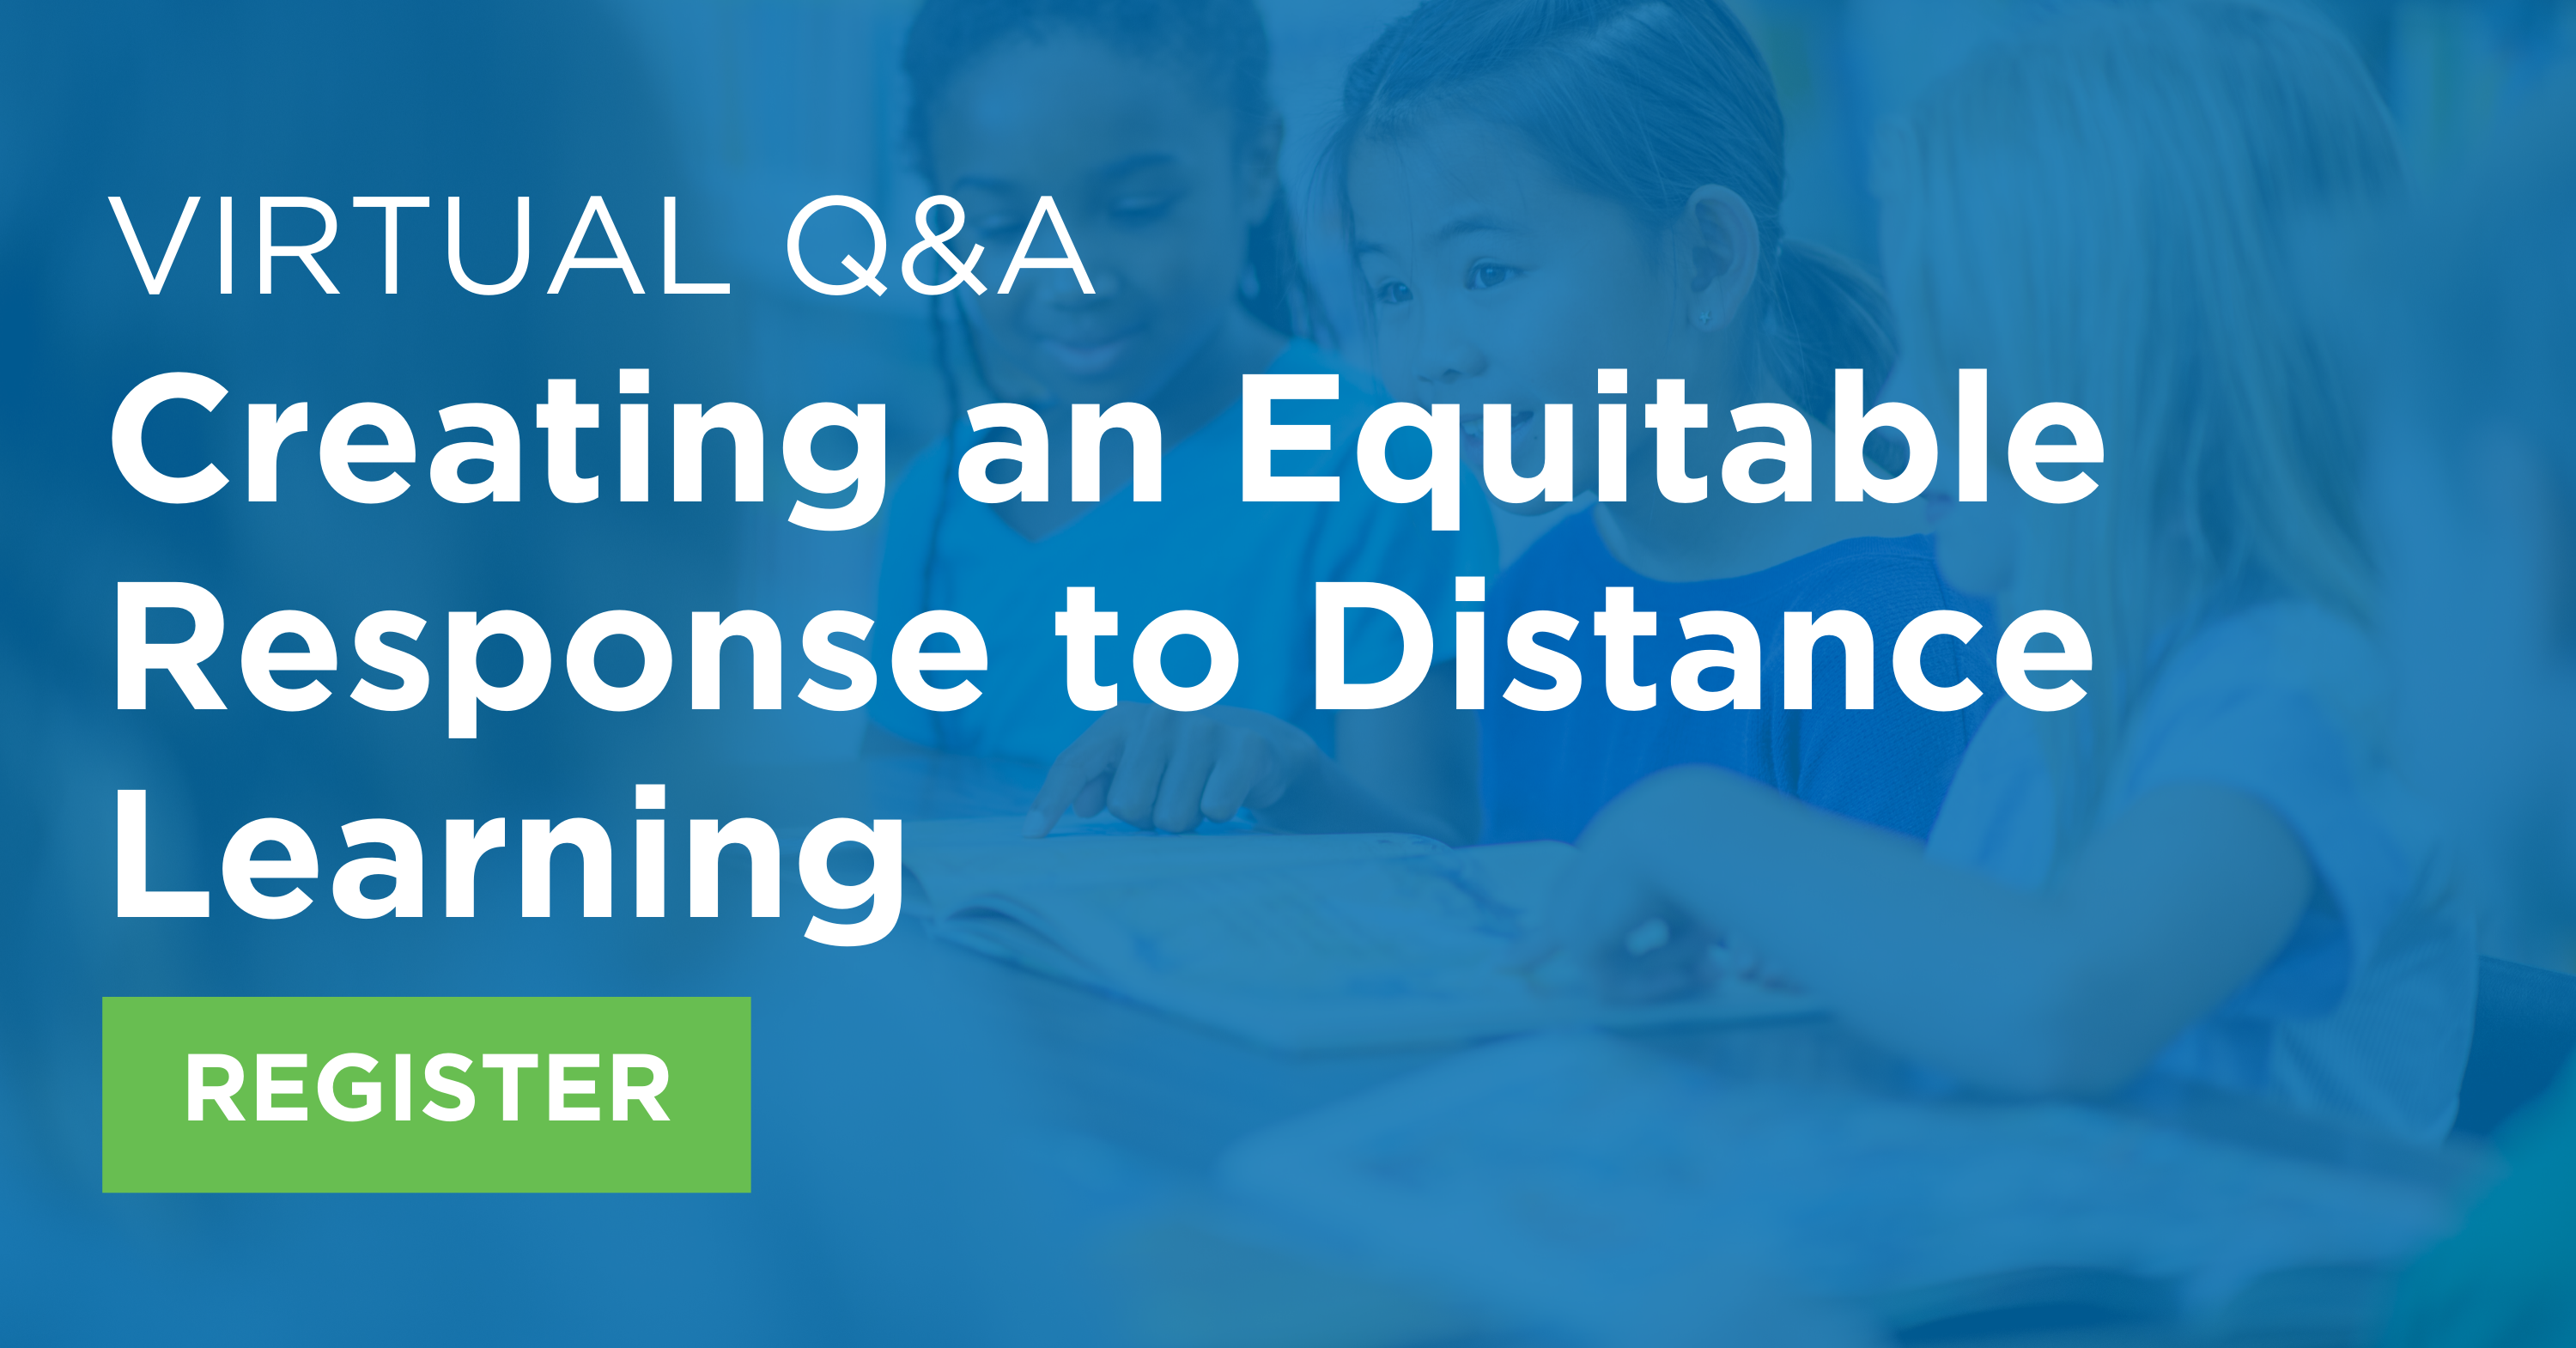 Virtual Q&A_ Creating an Equitable Response to Distance Learning Image